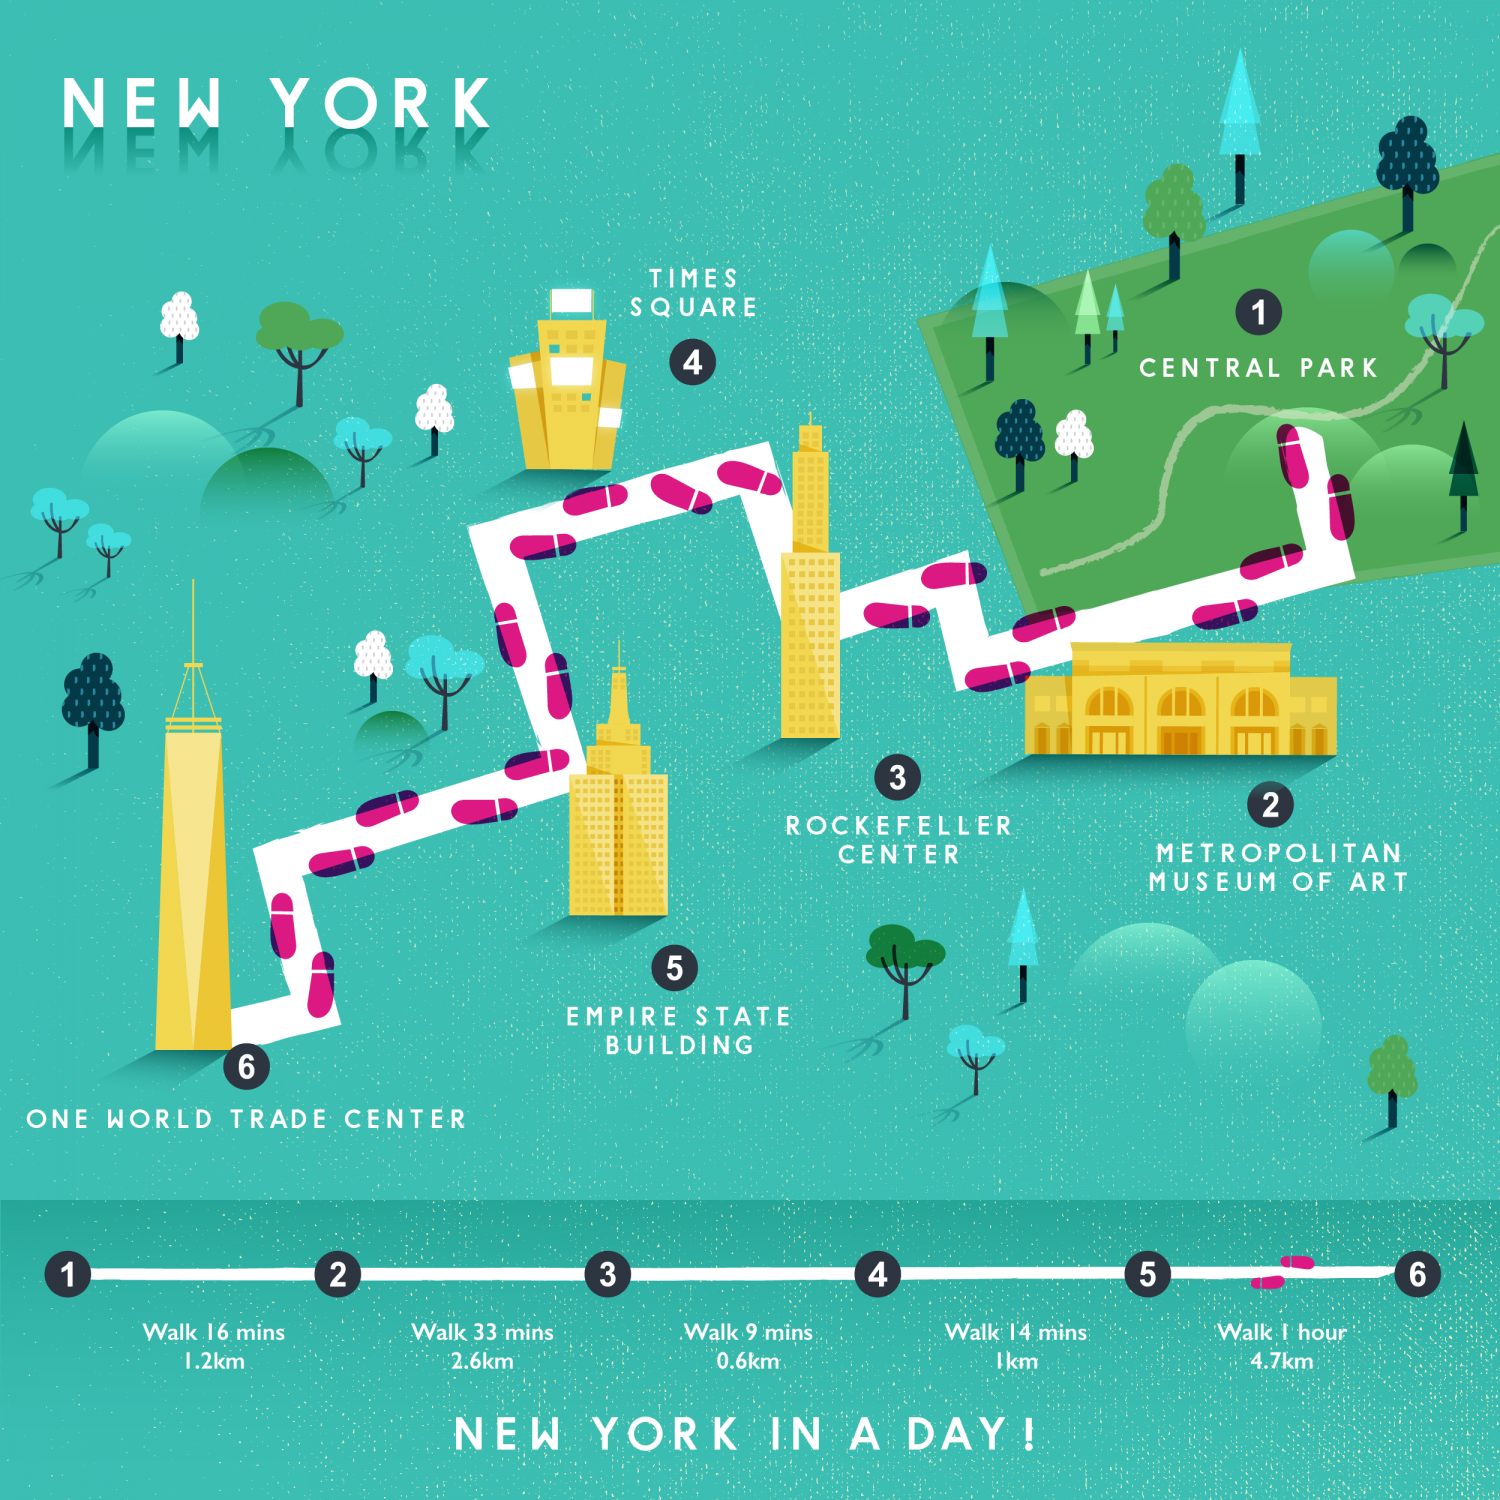 New York walking tour in a day